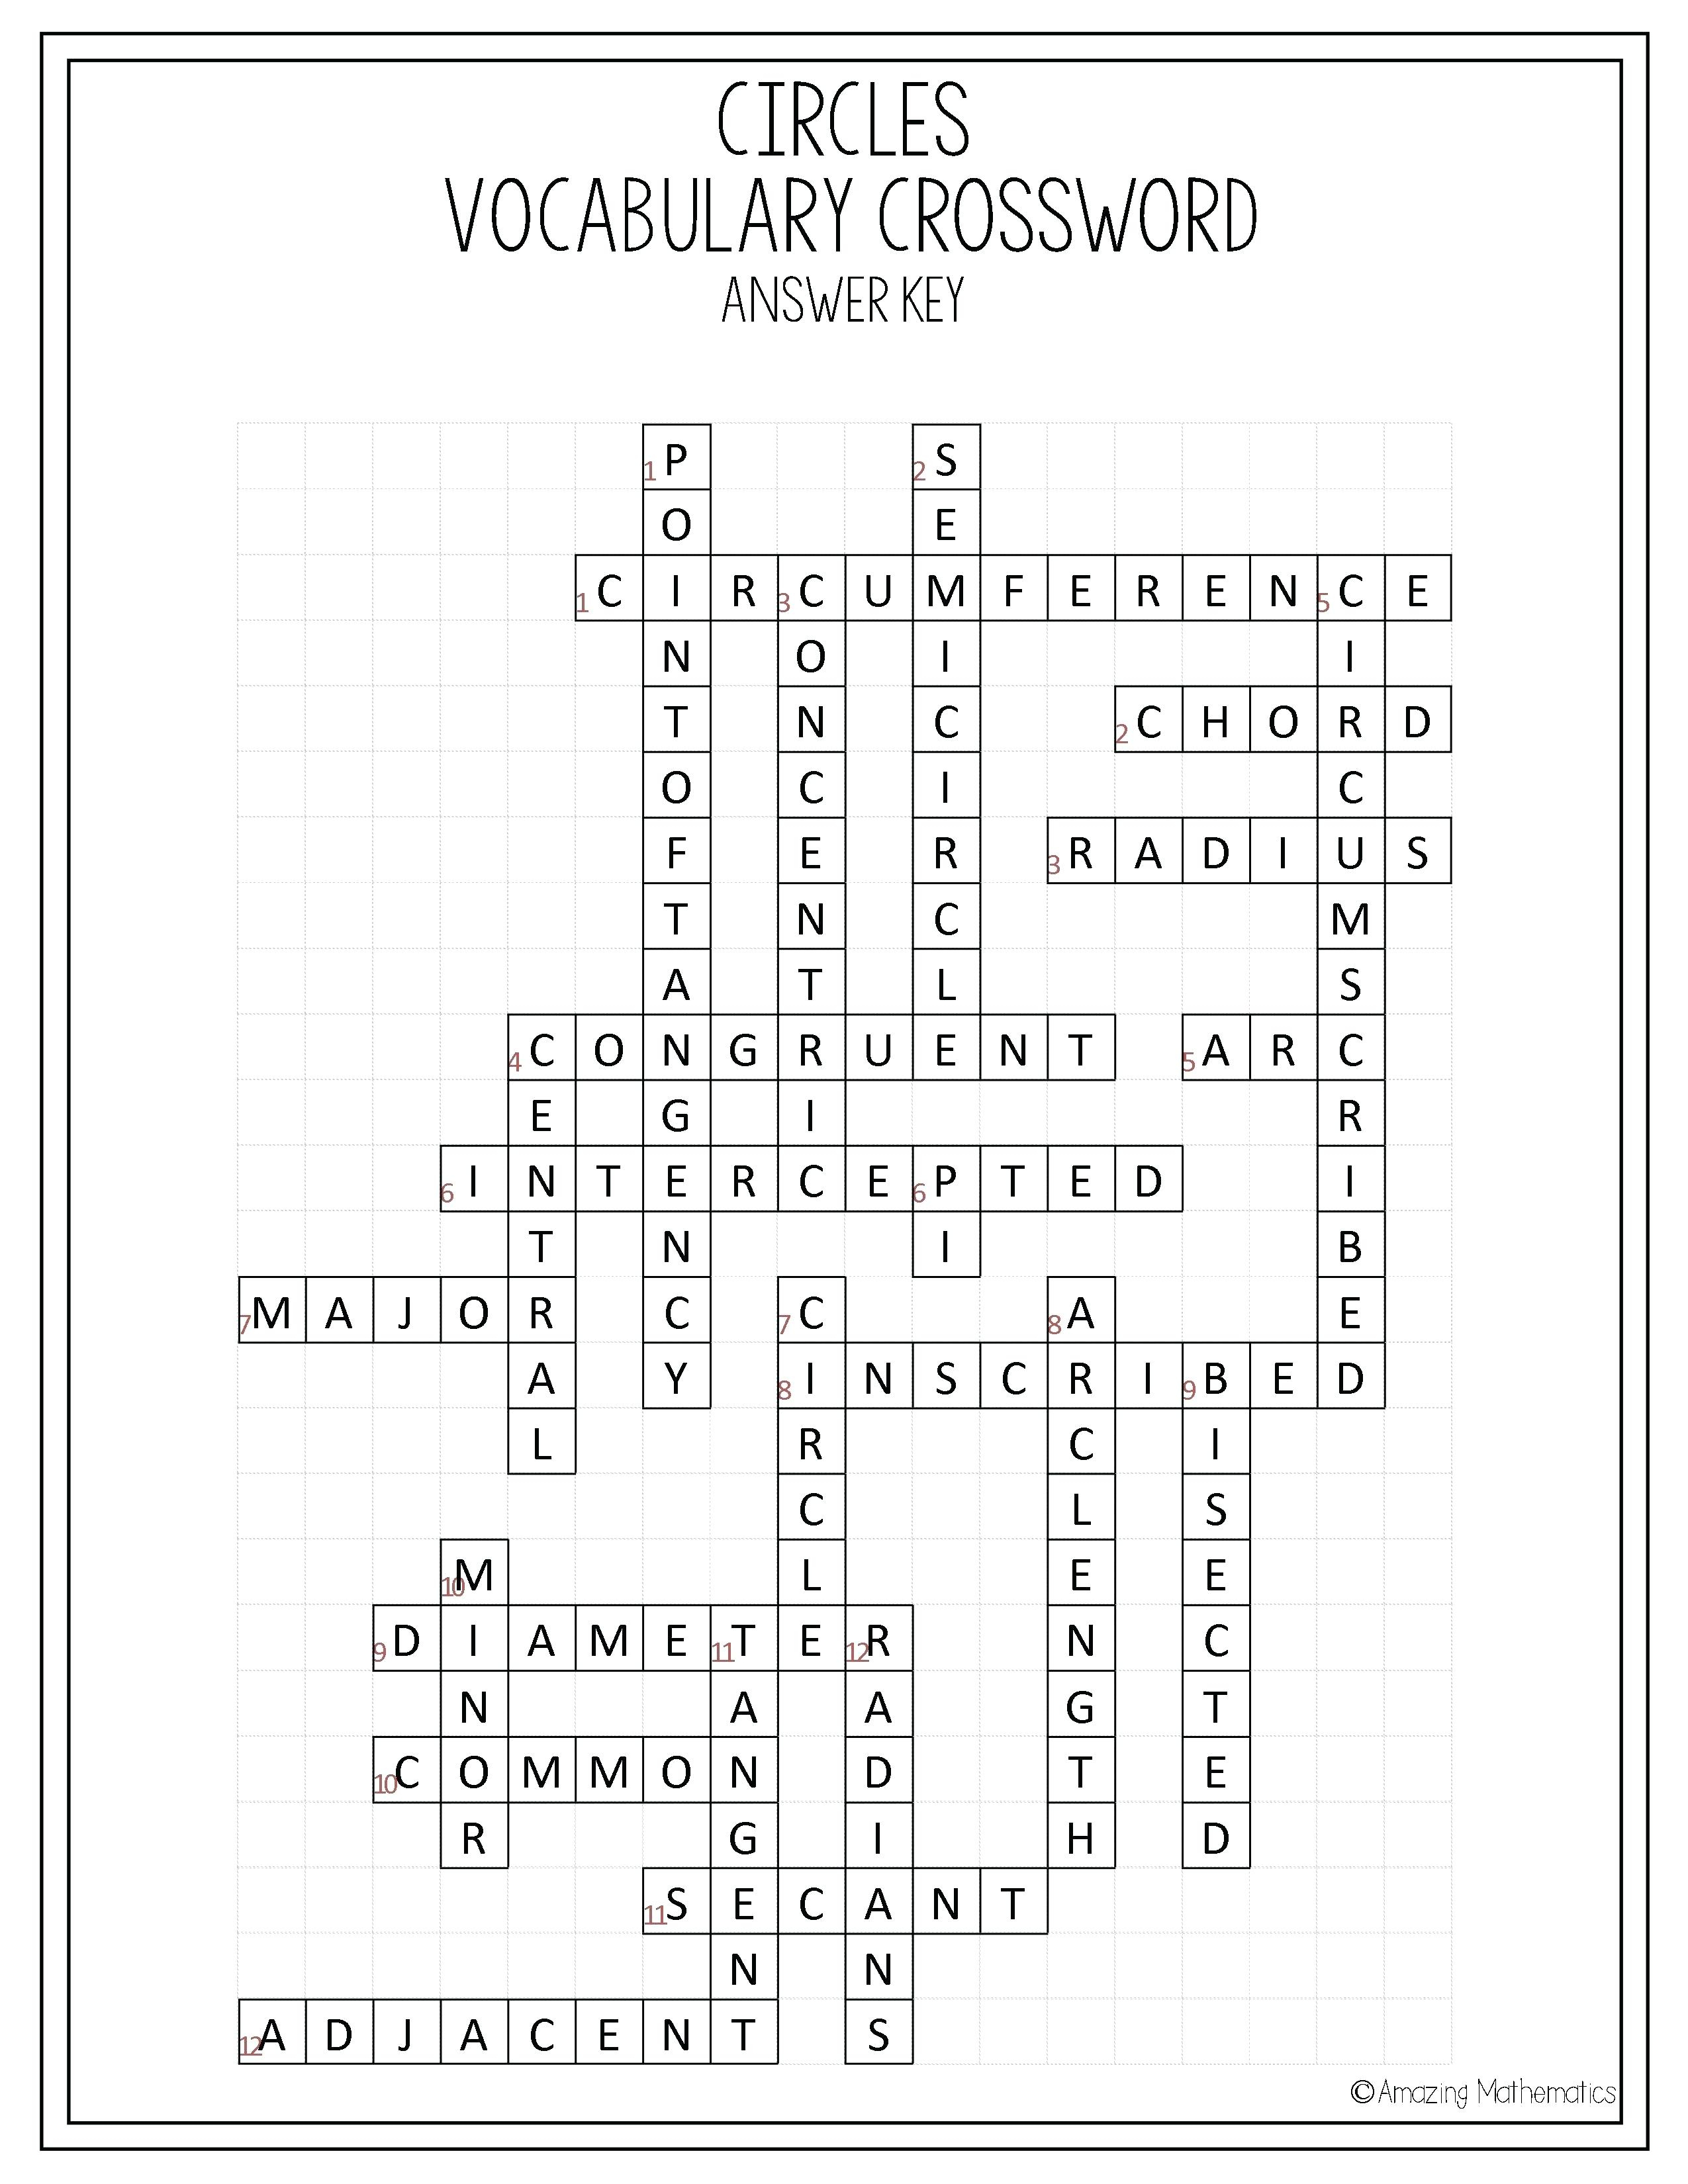 Geometry Crossword Puzzles - Yapis.sticken.co - Algebra 2 Crossword Puzzles Printable